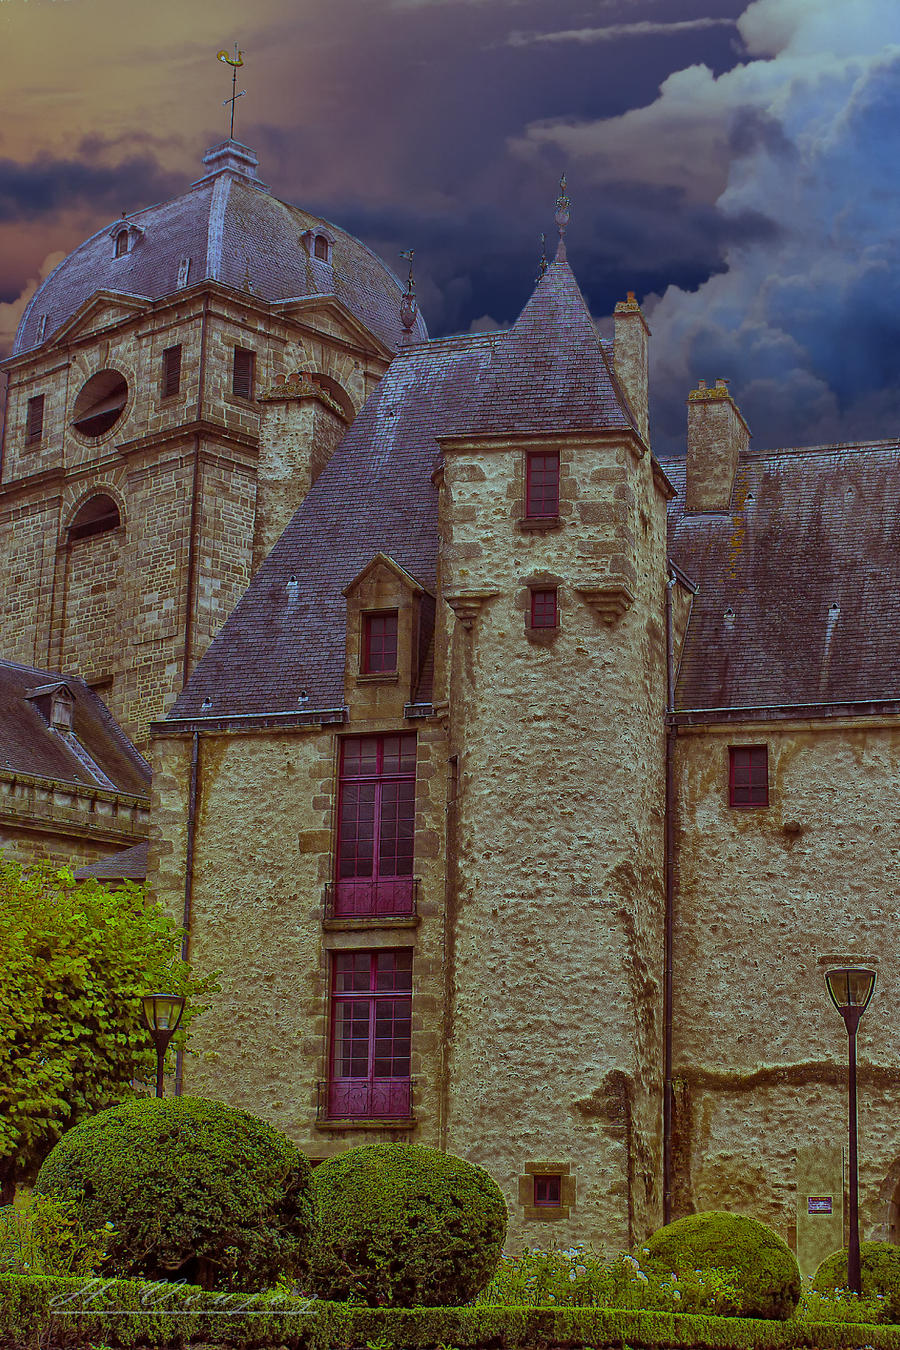 Alencon France  city photo : Alencon Orne France by hubert61 on DeviantArt